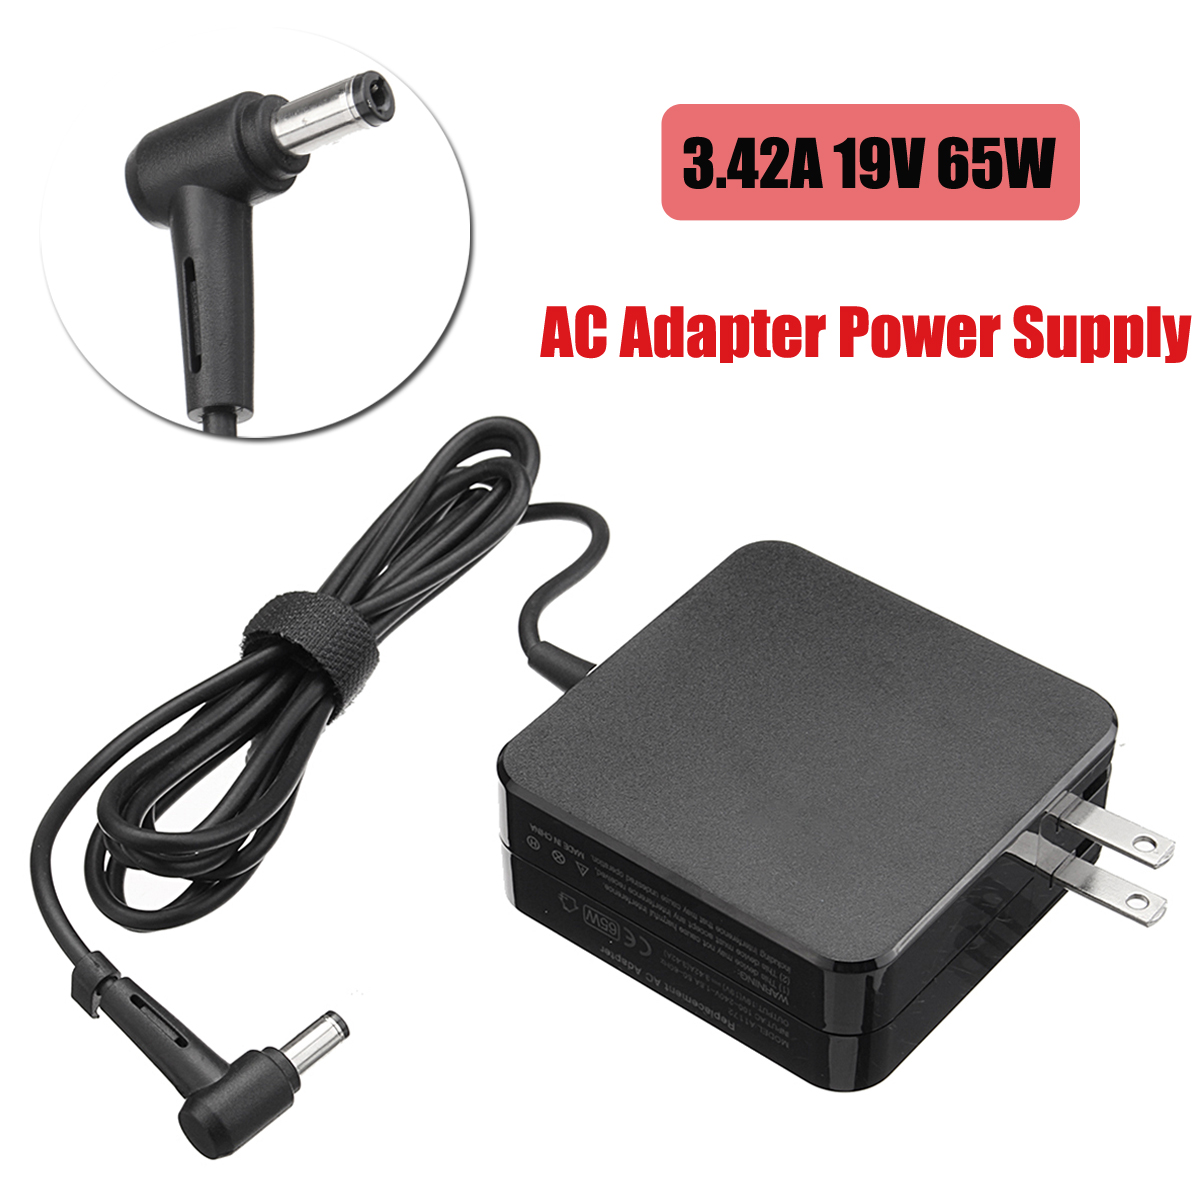 3.42A 19V 65W AC Adapter Laptop Notebook Charger AC Adapter Power Supply For Asus